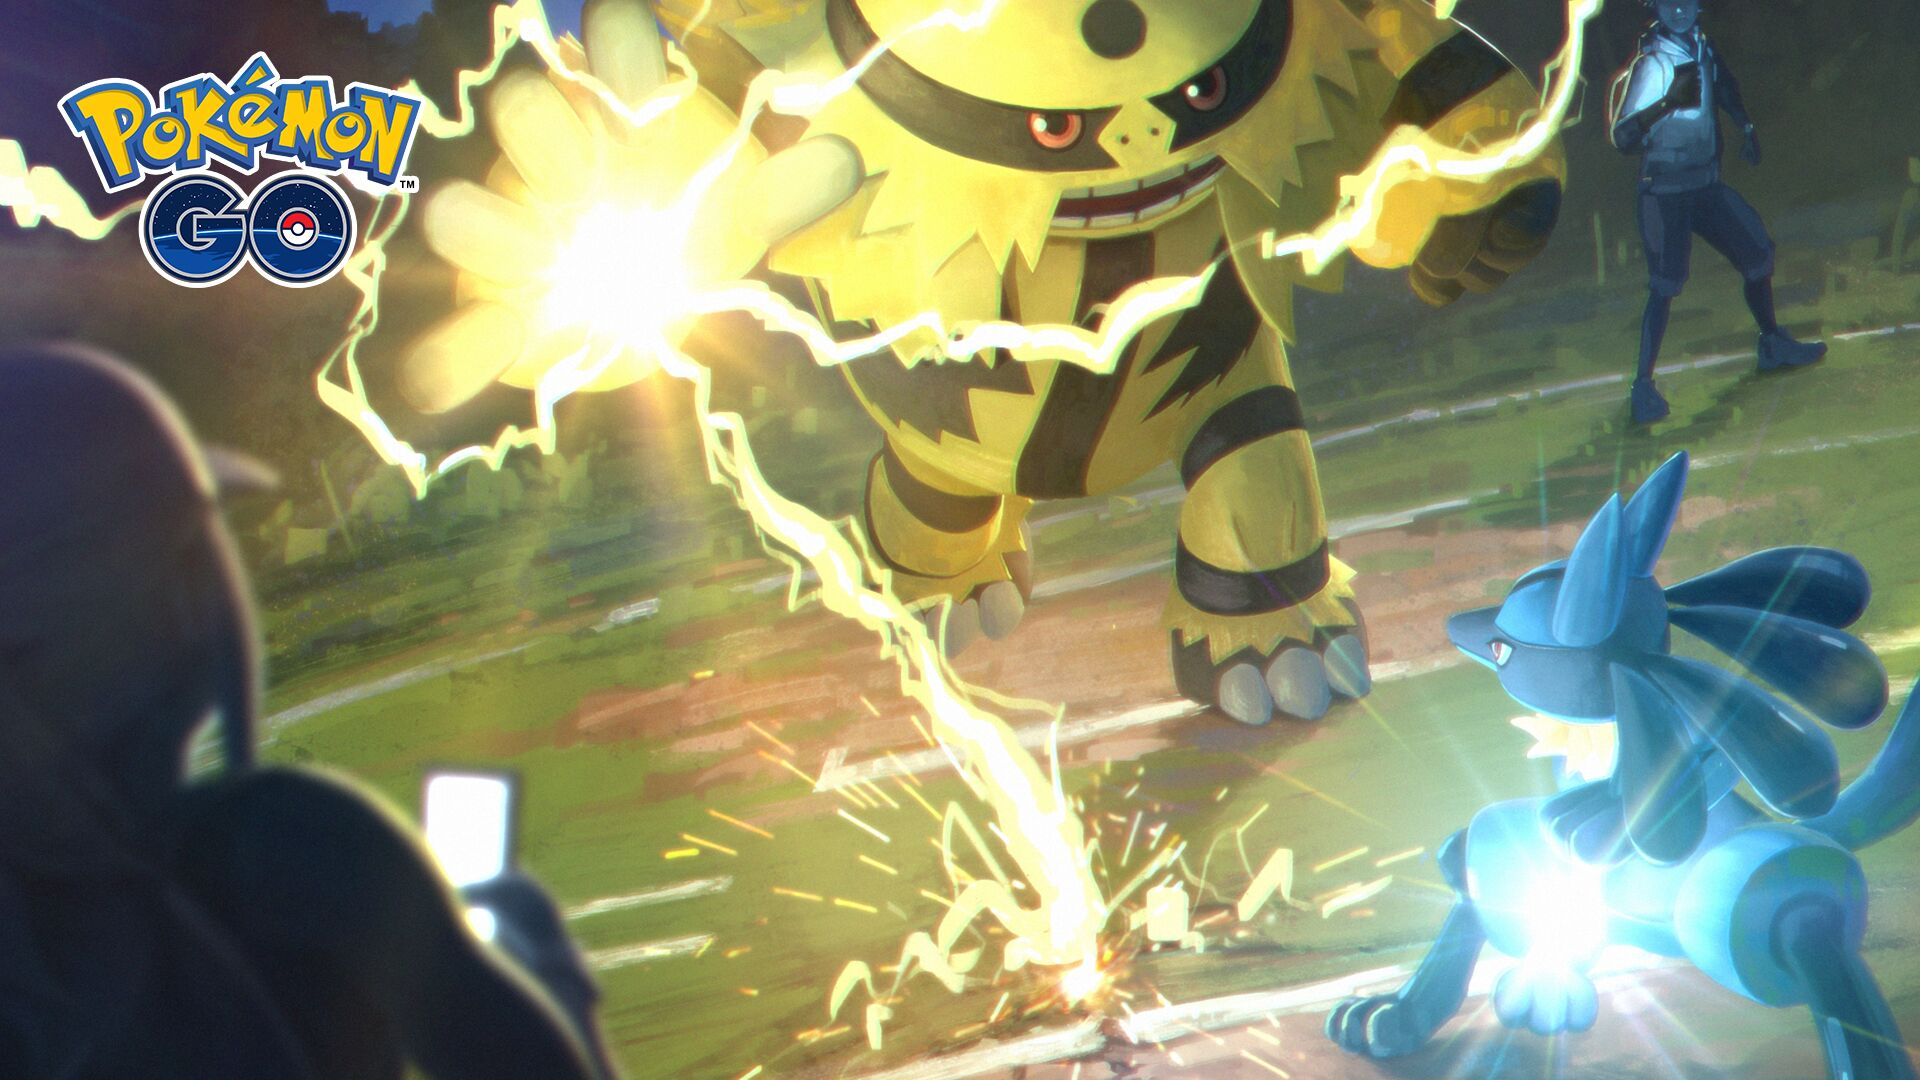 Pokemon Go Trainer Battles Are Live For Players Level 10 And